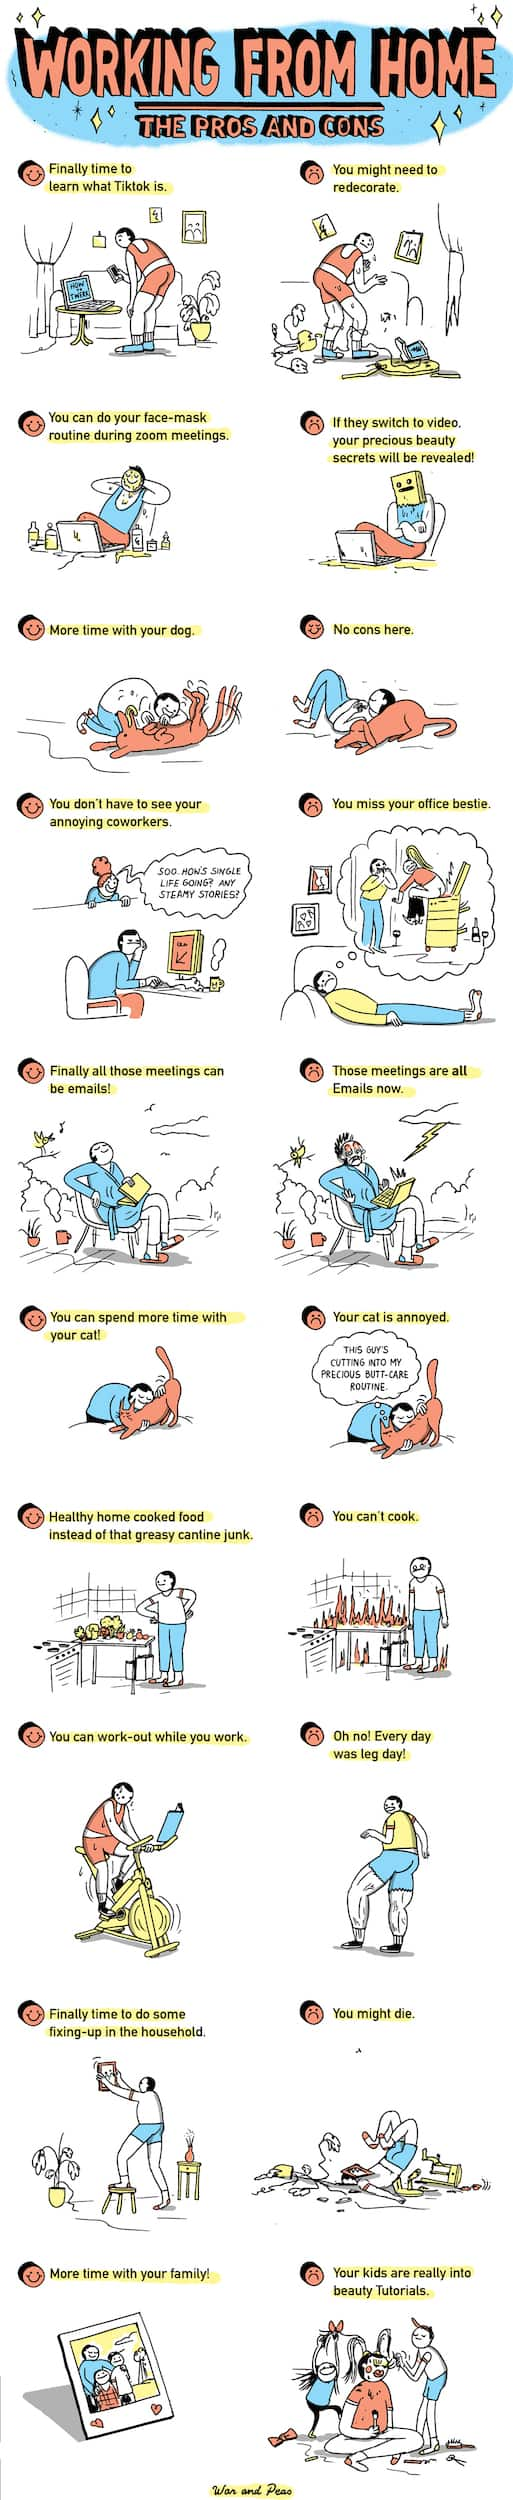 A list of the pros and cons of working from home drawn in a cartoon style